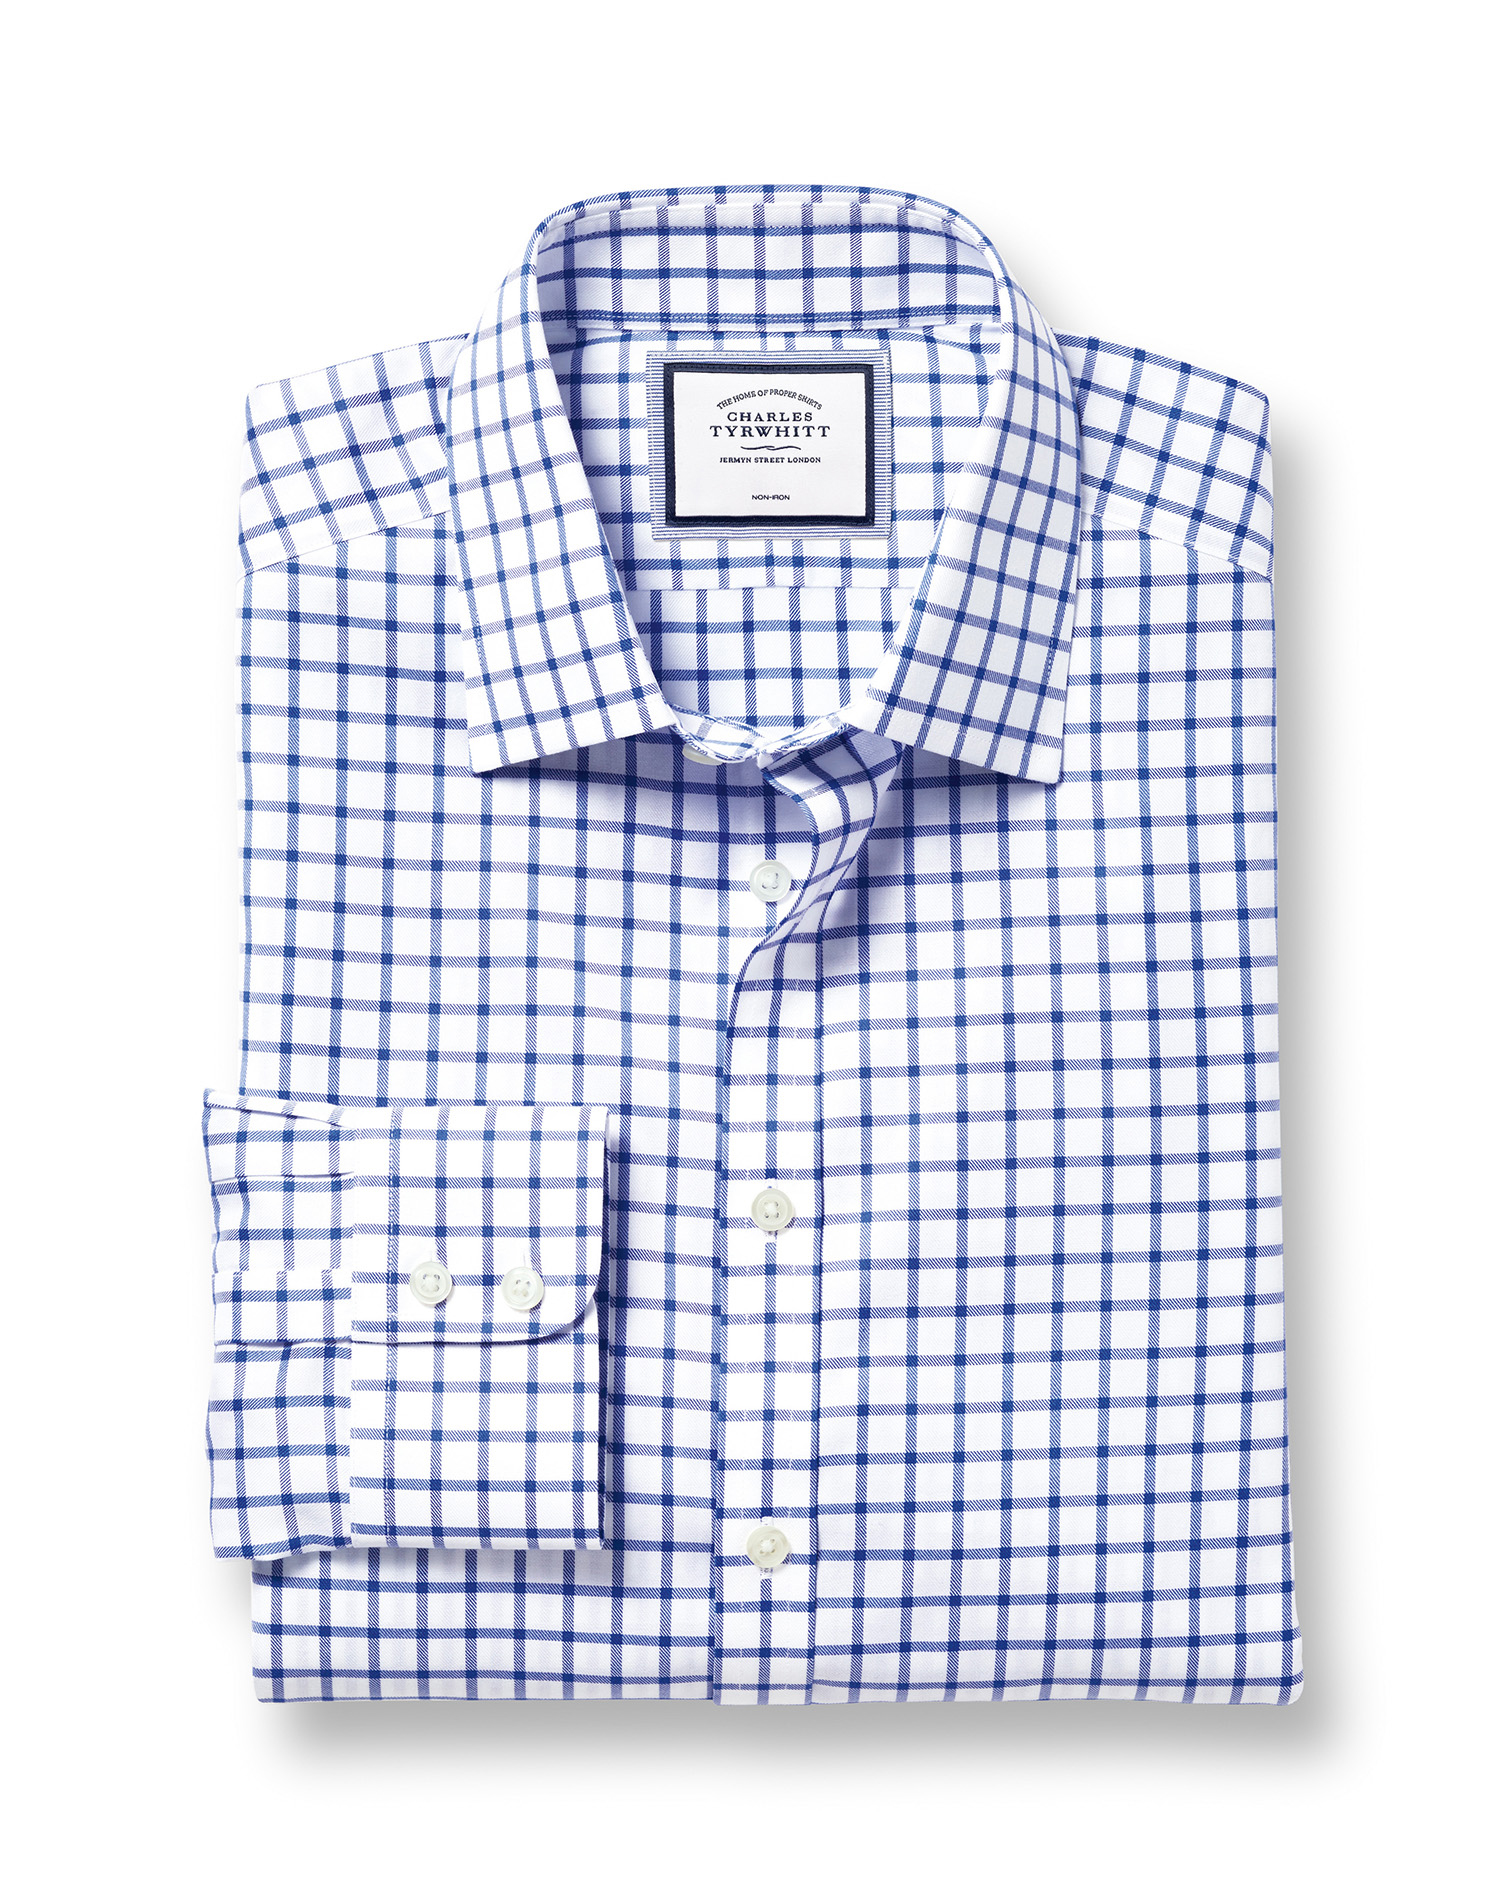 Classic Fit Non-Iron Twill Grid Check Royal Blue Cotton Formal Shirt Single Cuff Size 19/37 by Charl